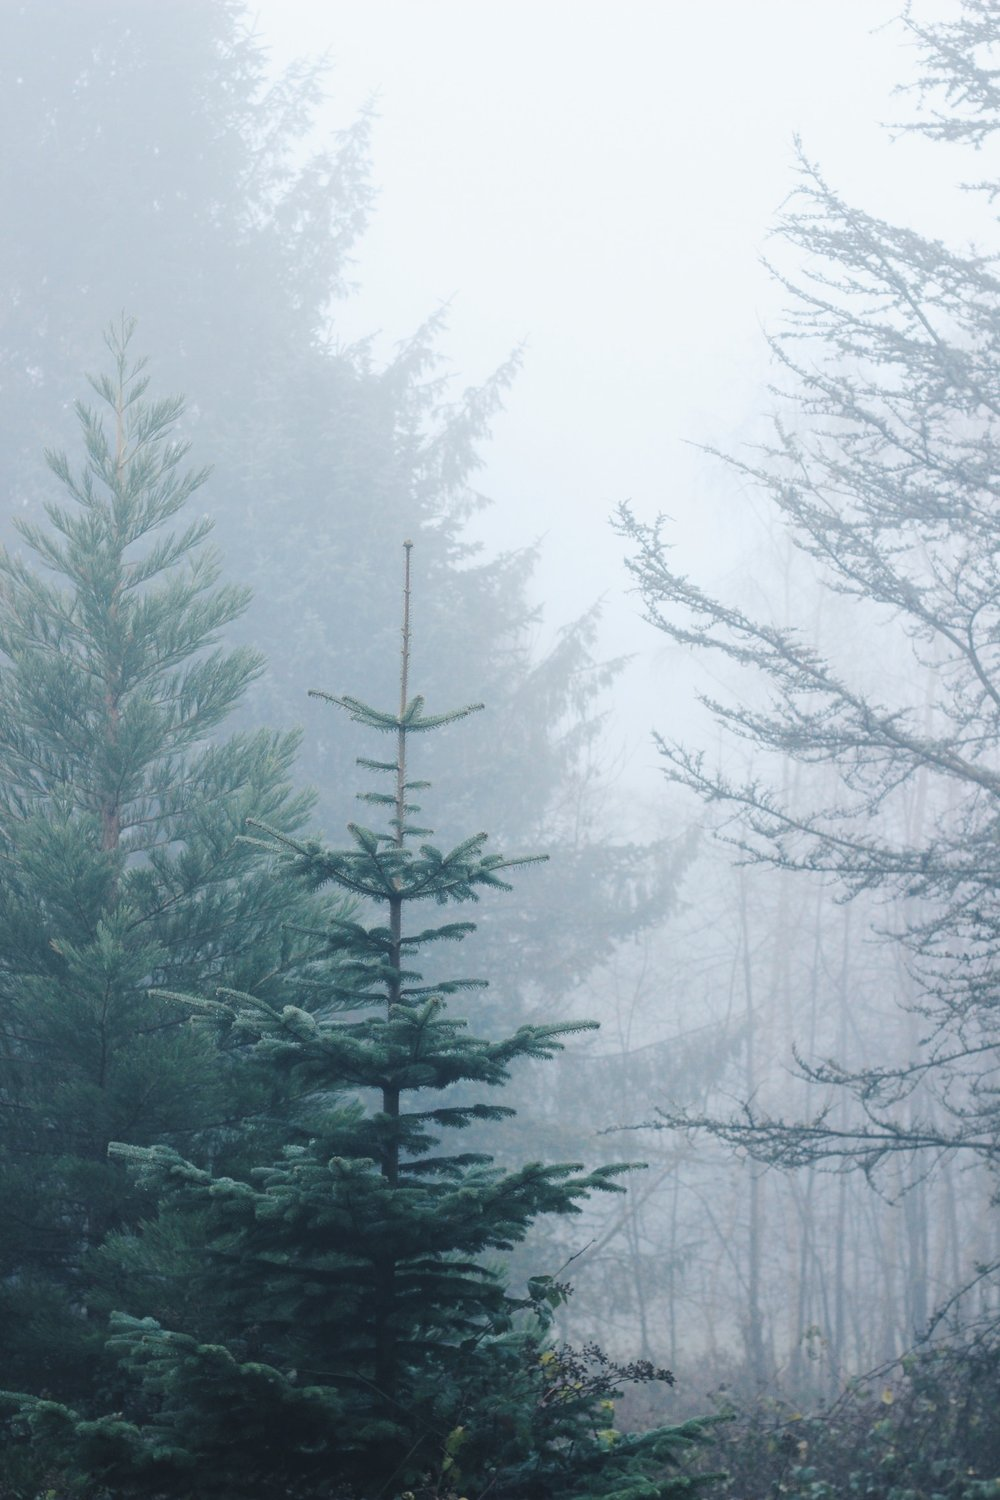 Pine trees in the fog